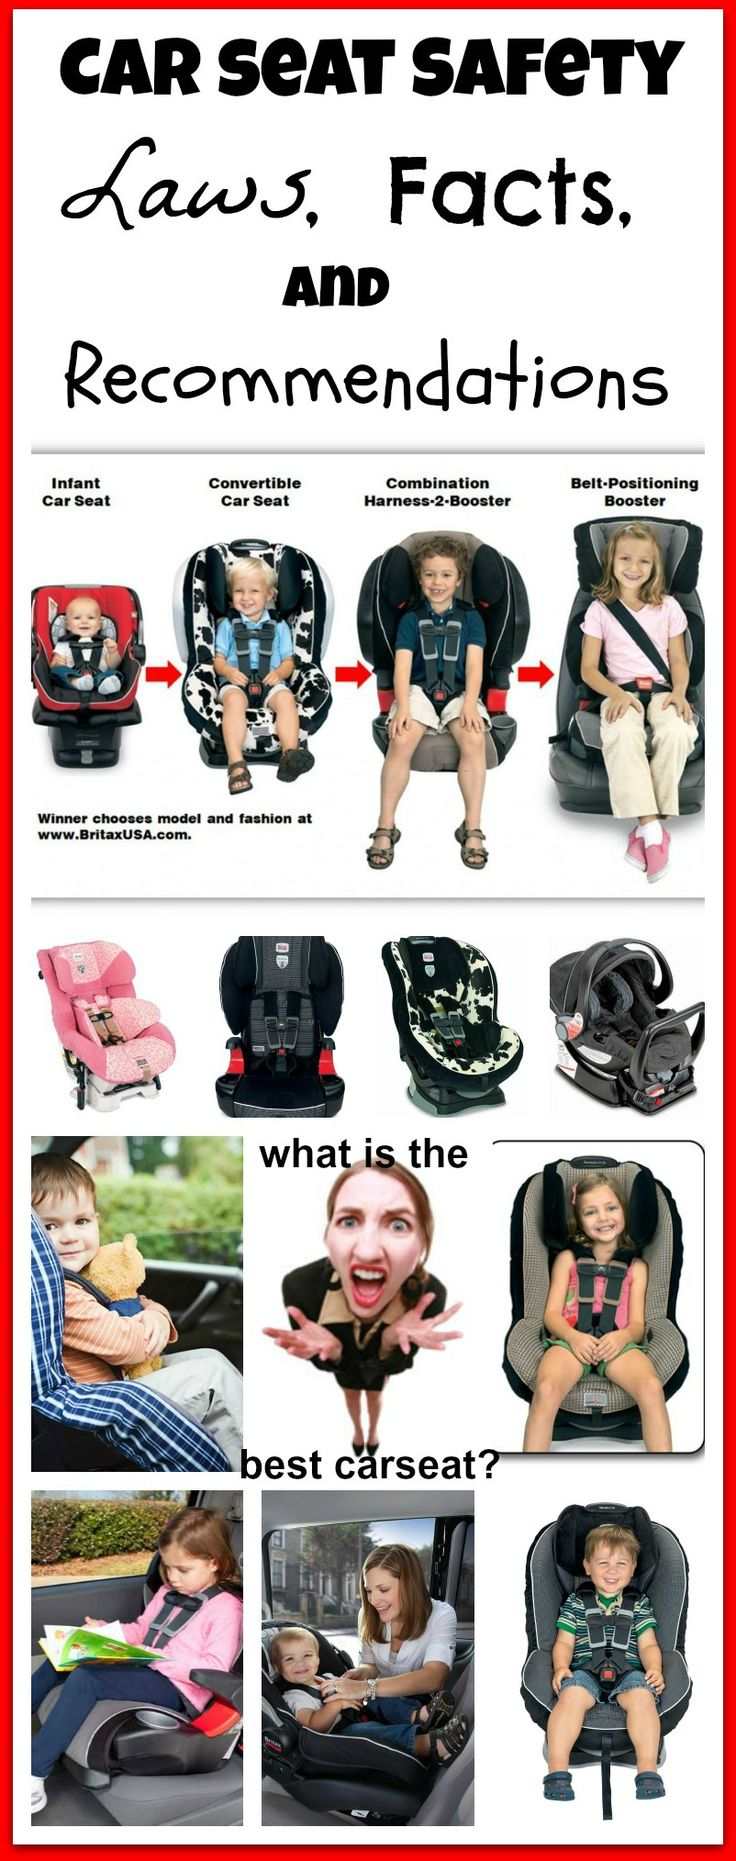 car seat laws facts and recommendations which car seat is the best